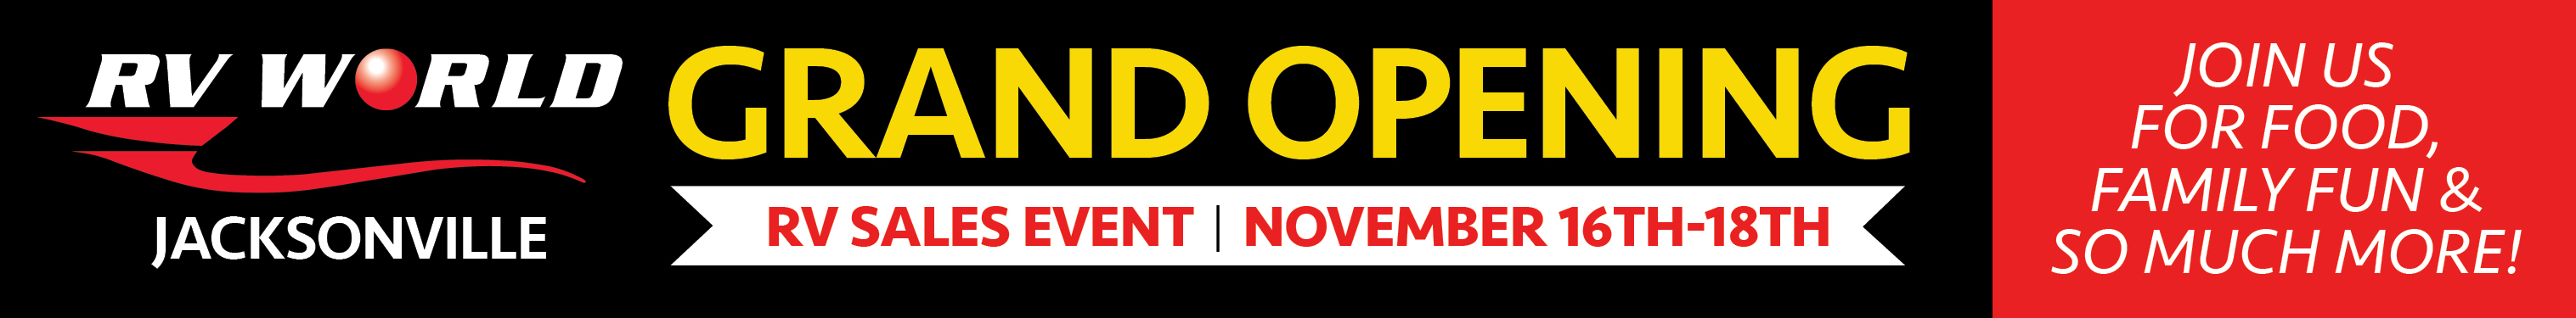 Grand Opening Sales Event